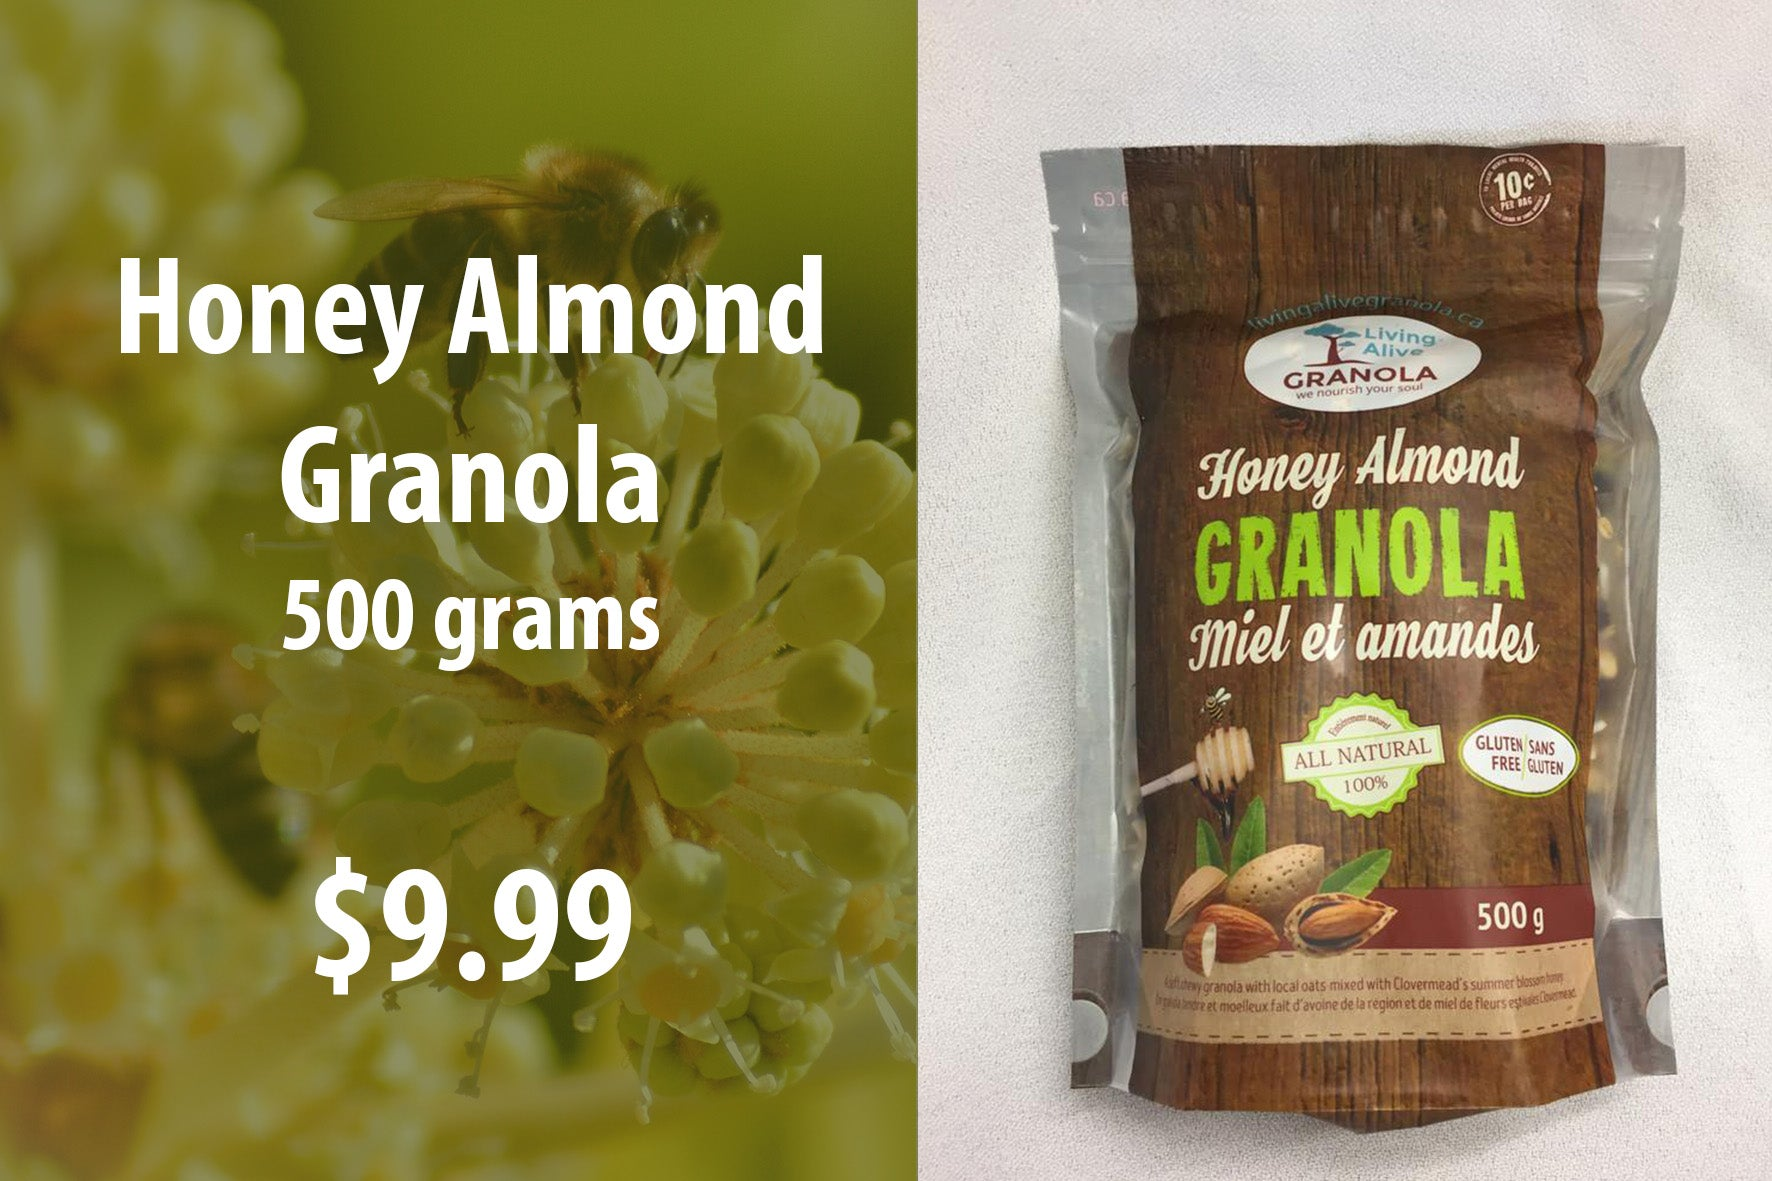 Honey Almond Granola 500 grams